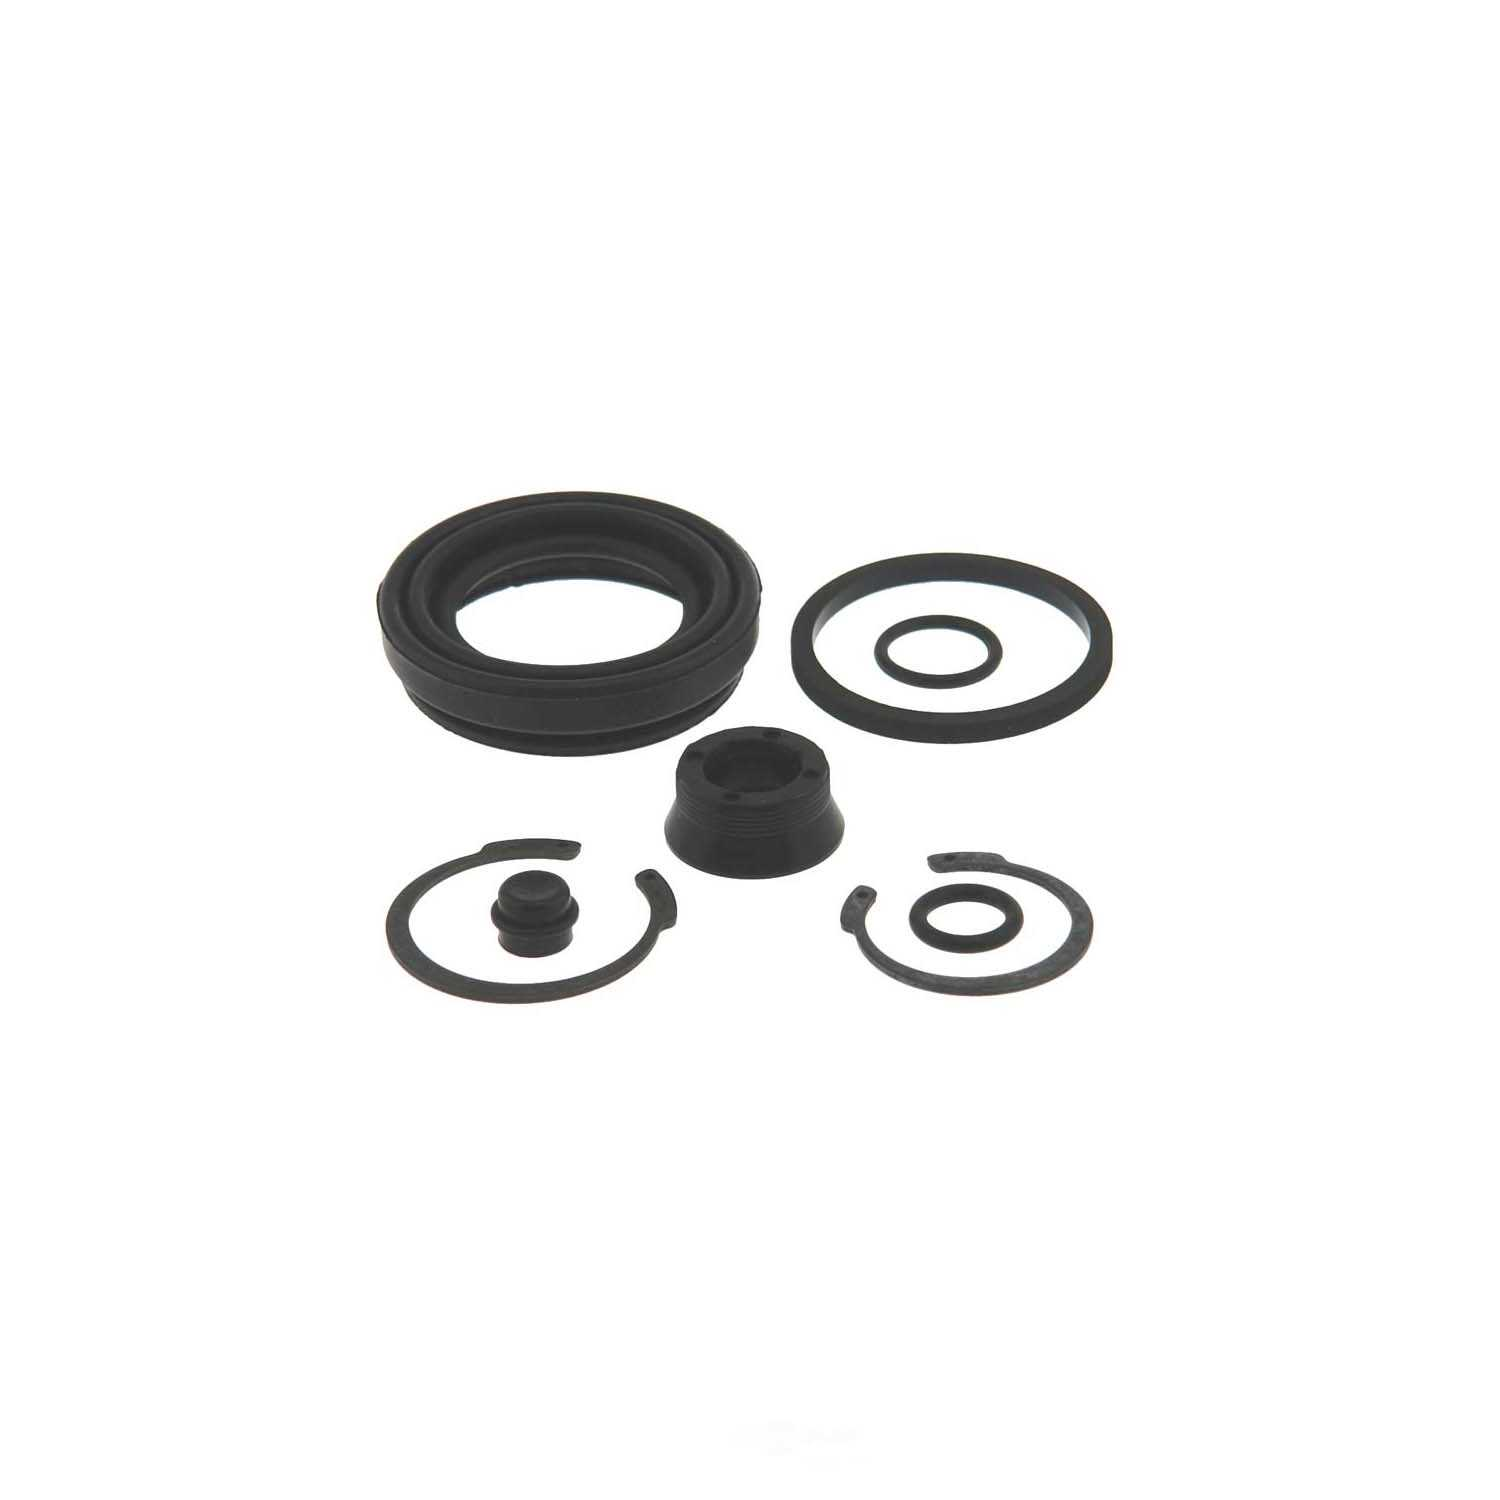 CARLSON QUALITY BRAKE PARTS - Disc Brake Caliper Repair Kit (Rear) - CRL 15347